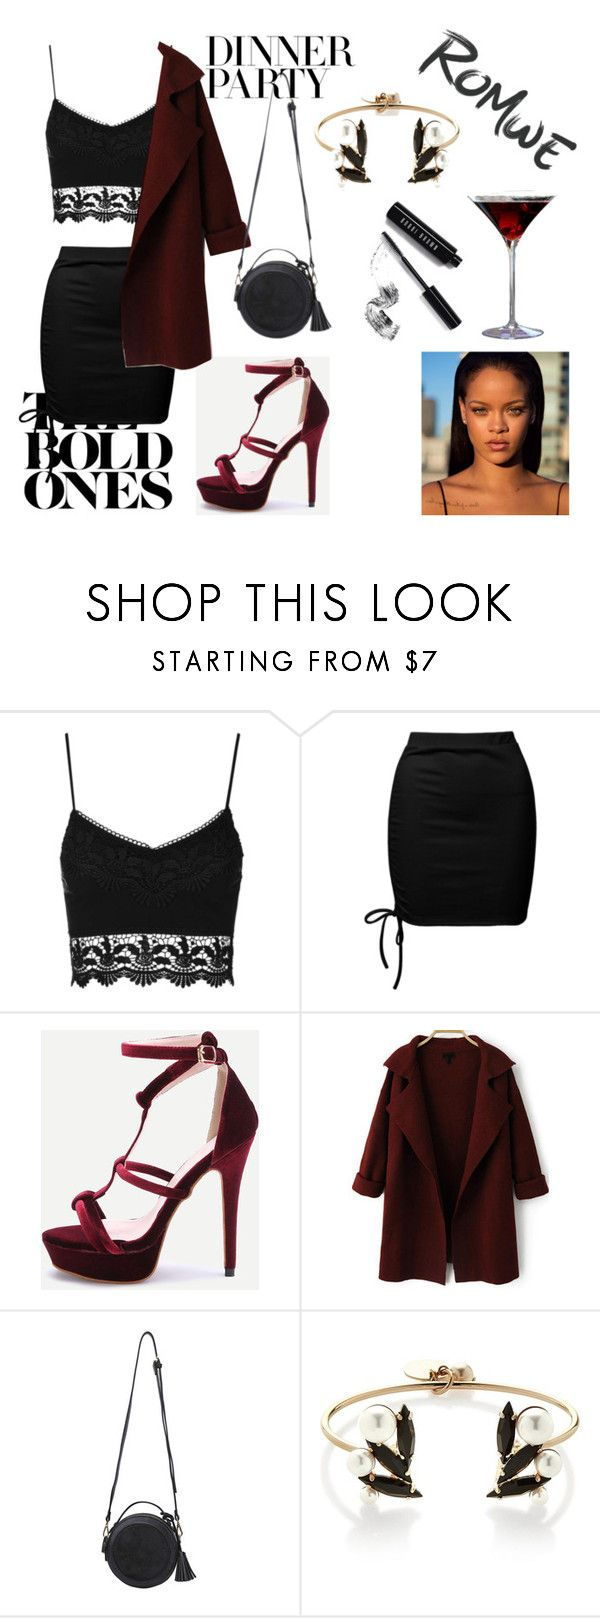 """Romwe"" by delicmevla ❤ liked on Polyvore featuring Sans Souci, Anton Heunis and Bobbi Brown Cosmetics"